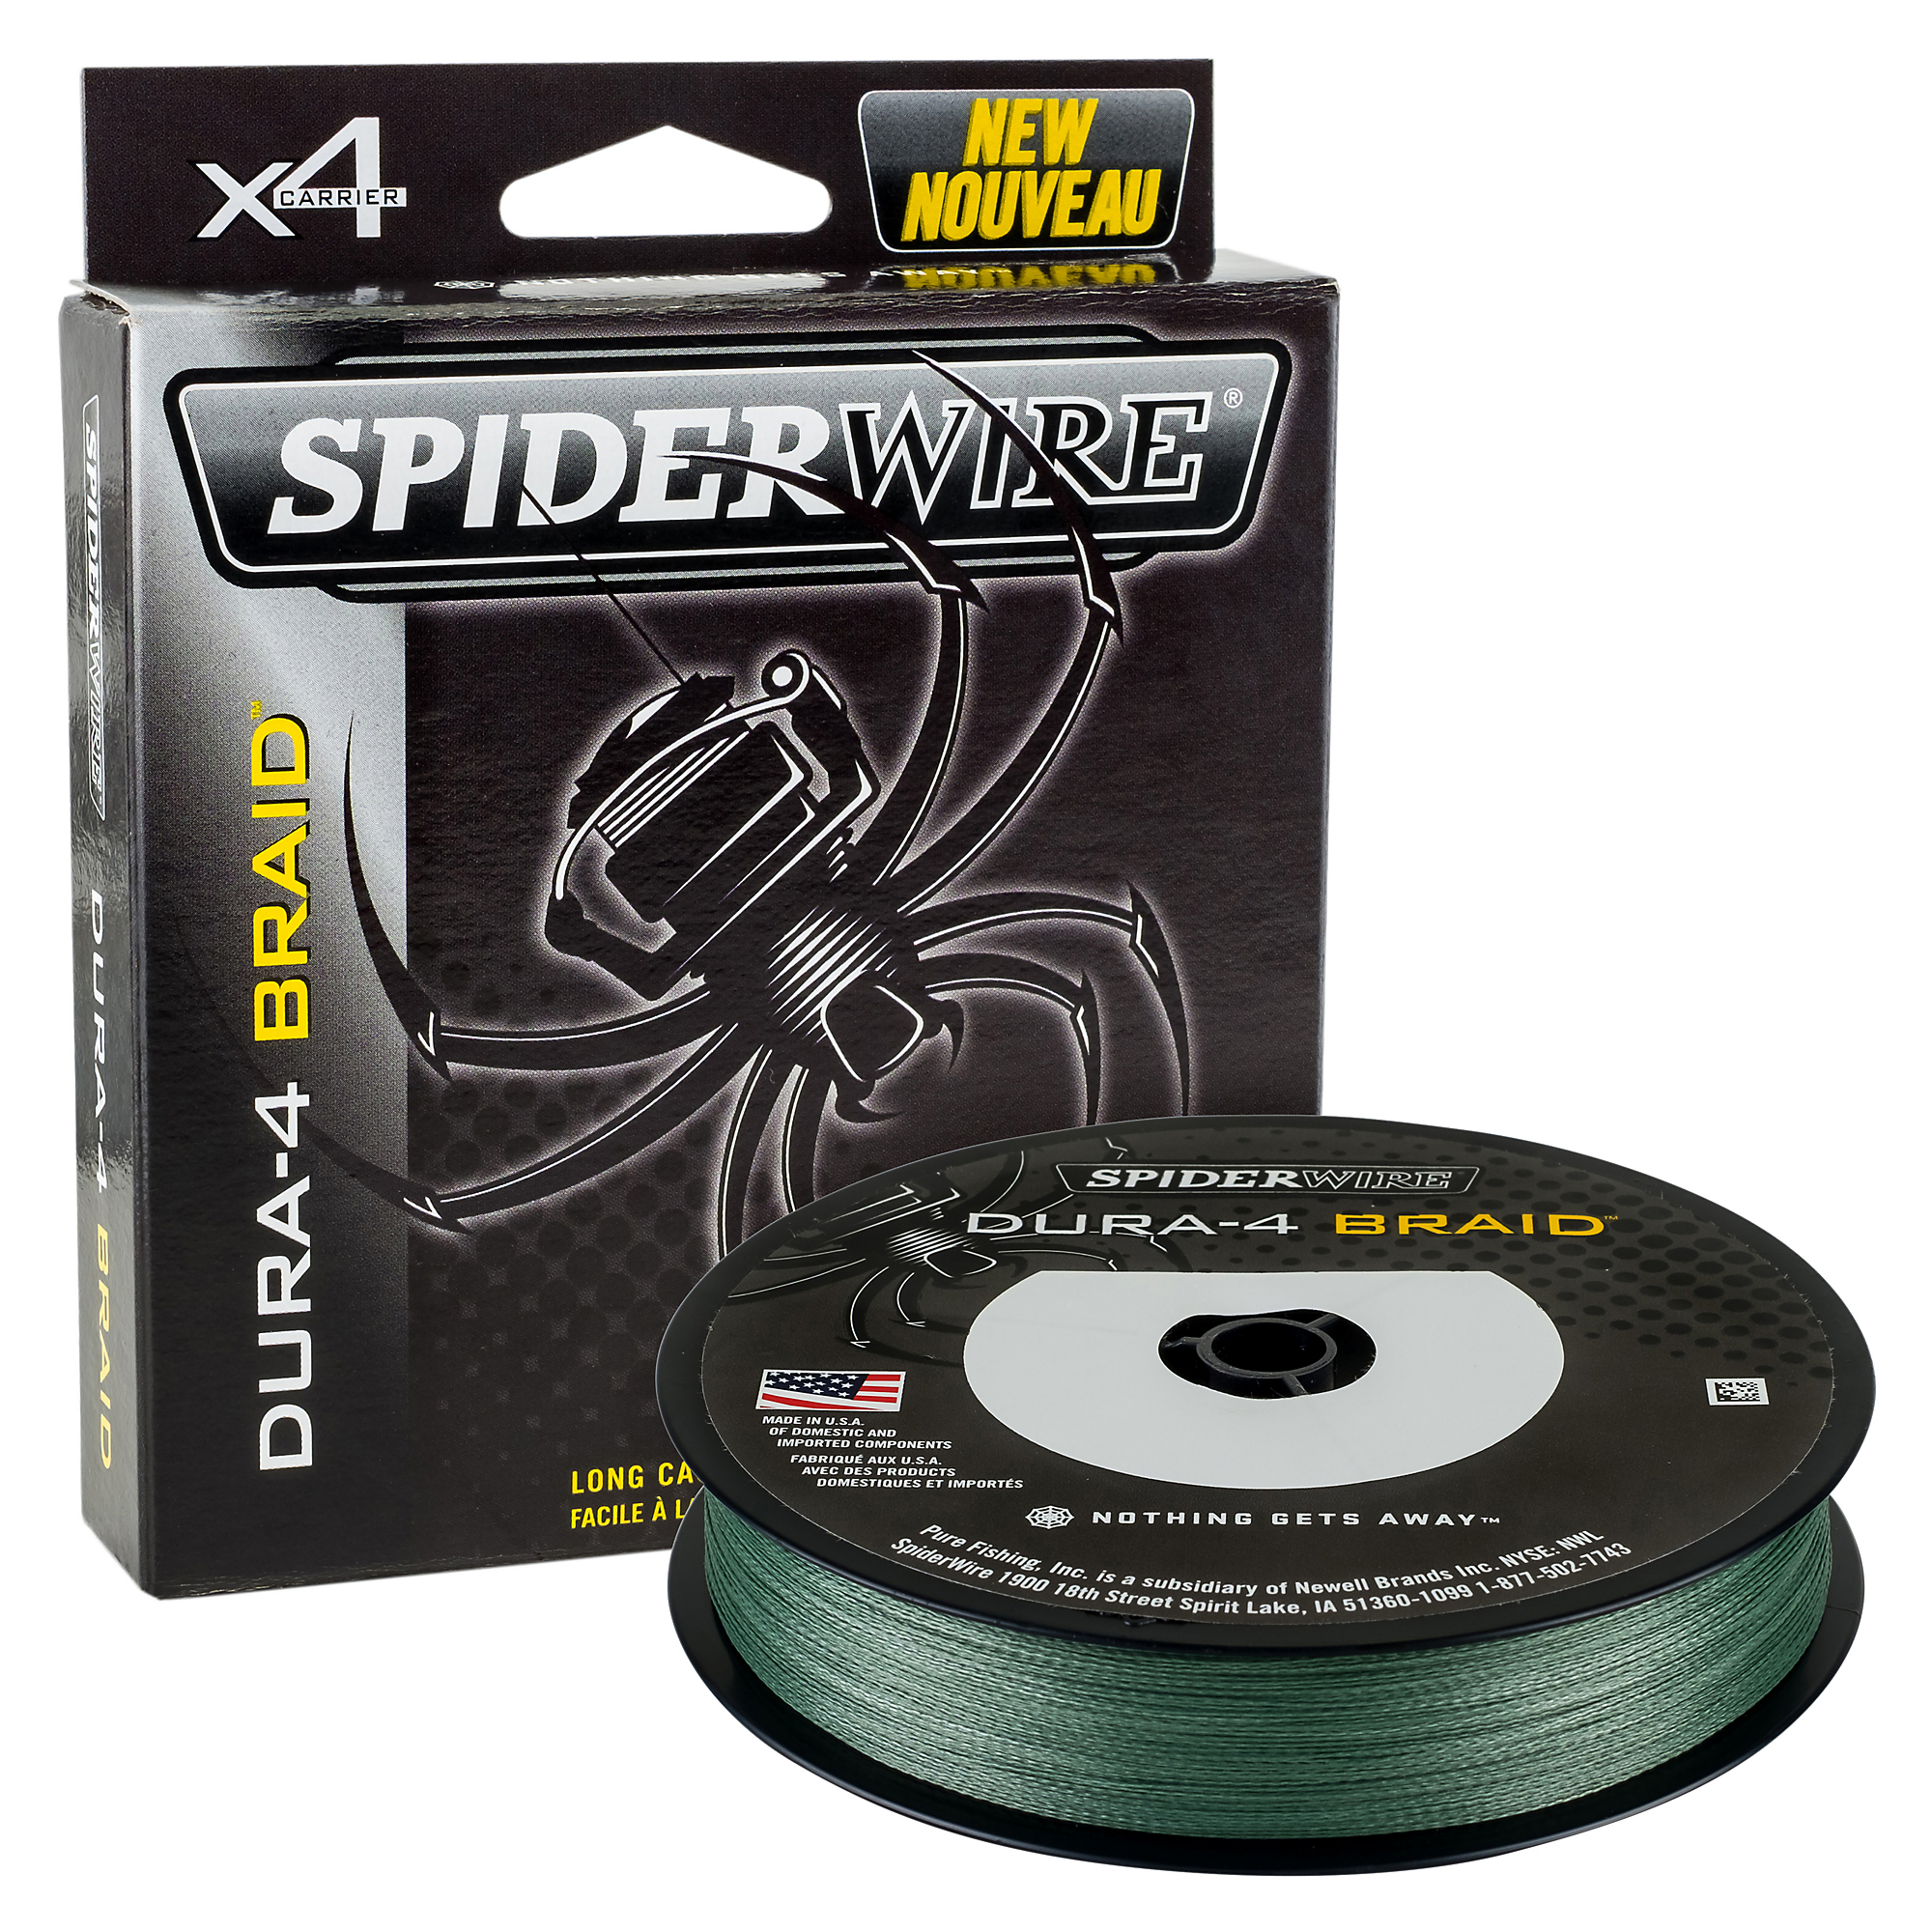 SpiderWire® Dura4 Braid 300m